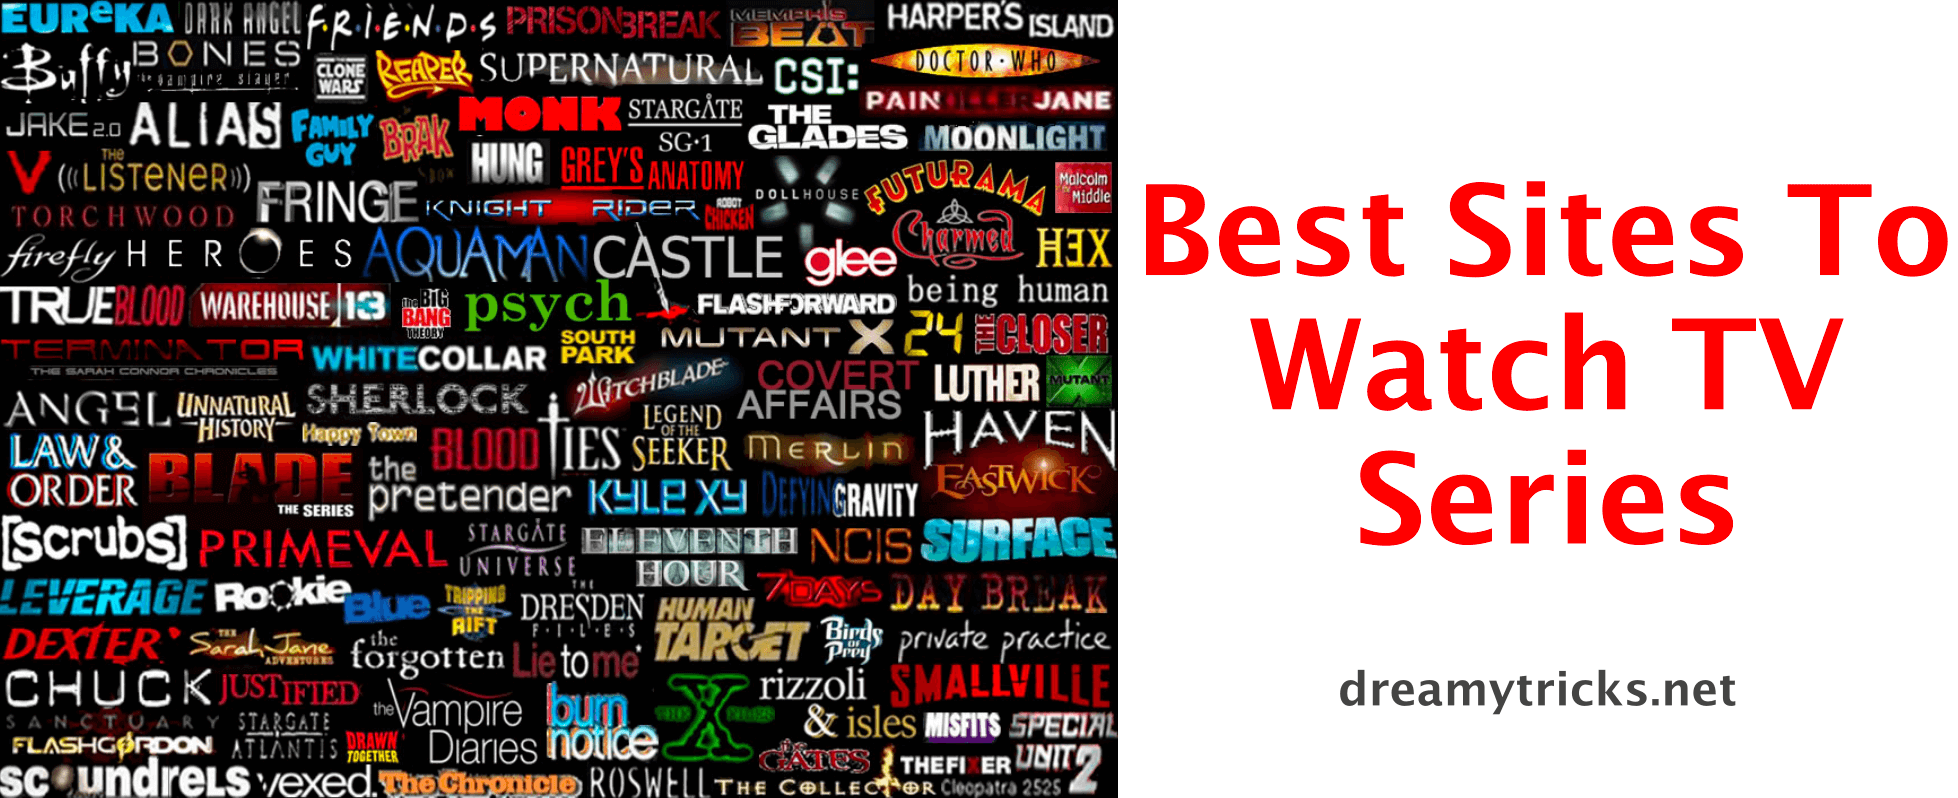 Best Sites To Watch Series Online For Free 2018. | Dreamy Tricks ...